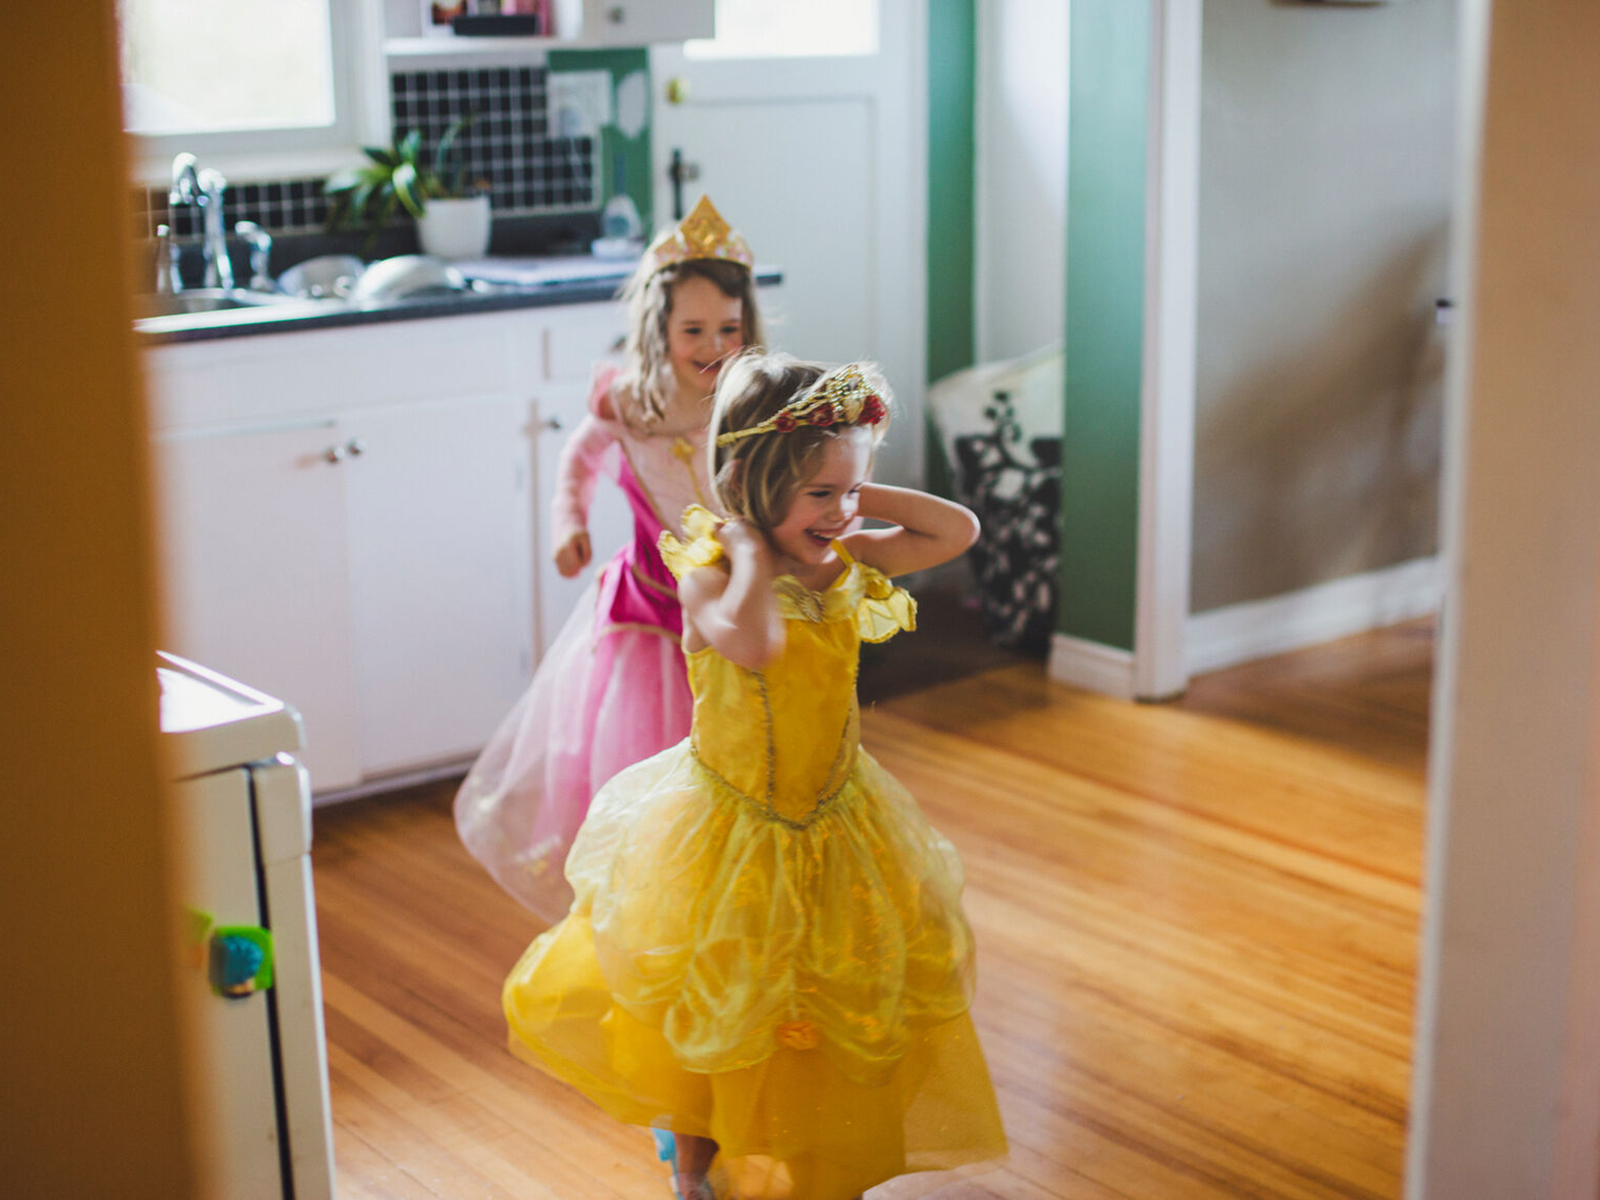 Two little girls wearing princess costumes play in the kitchen